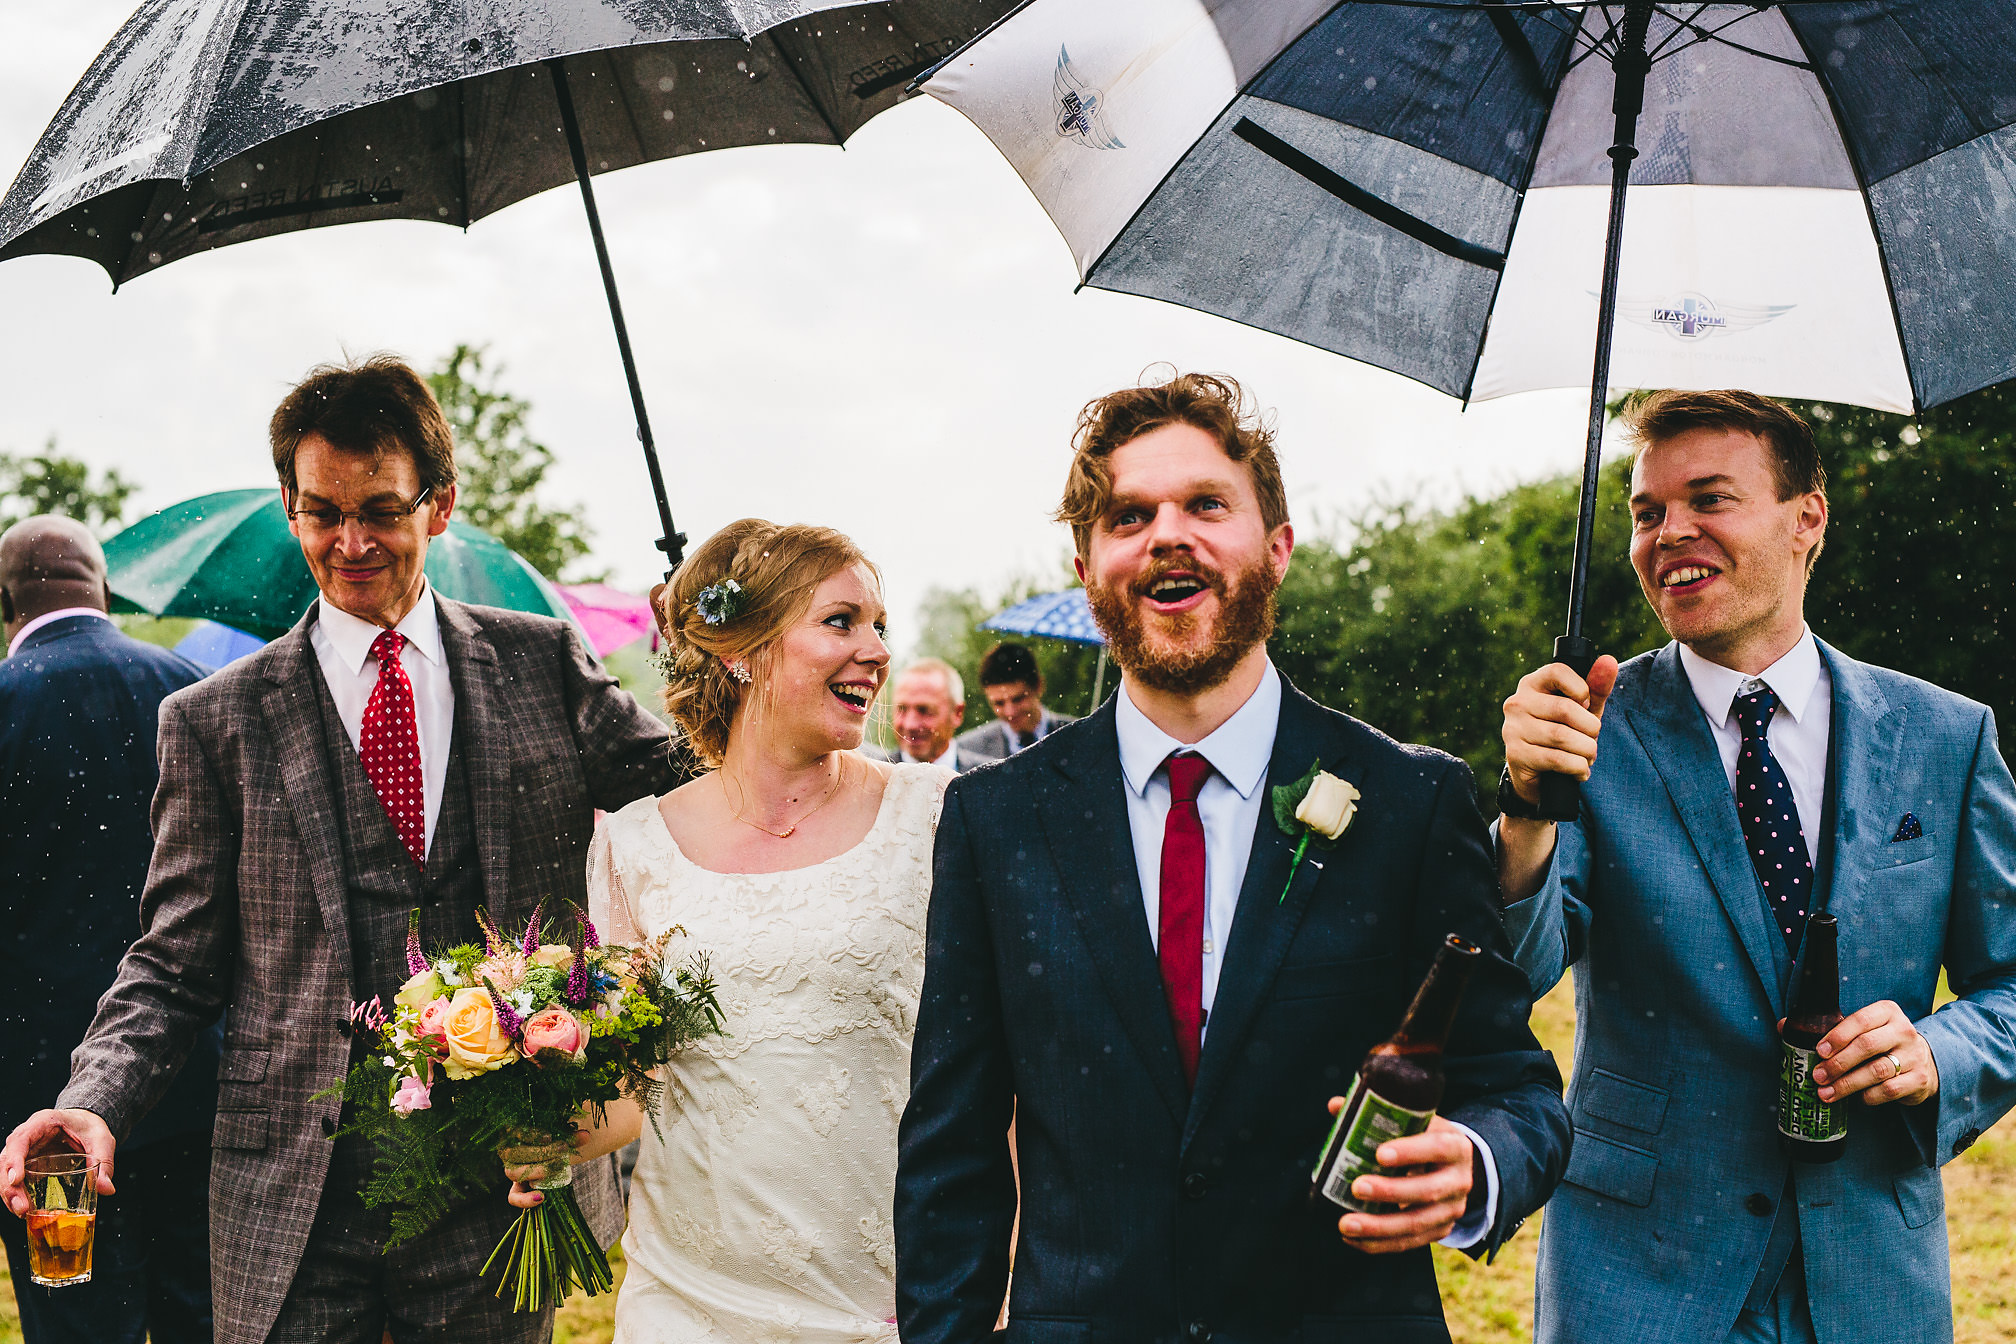 Rainy and fun wedding in Northamptonshire